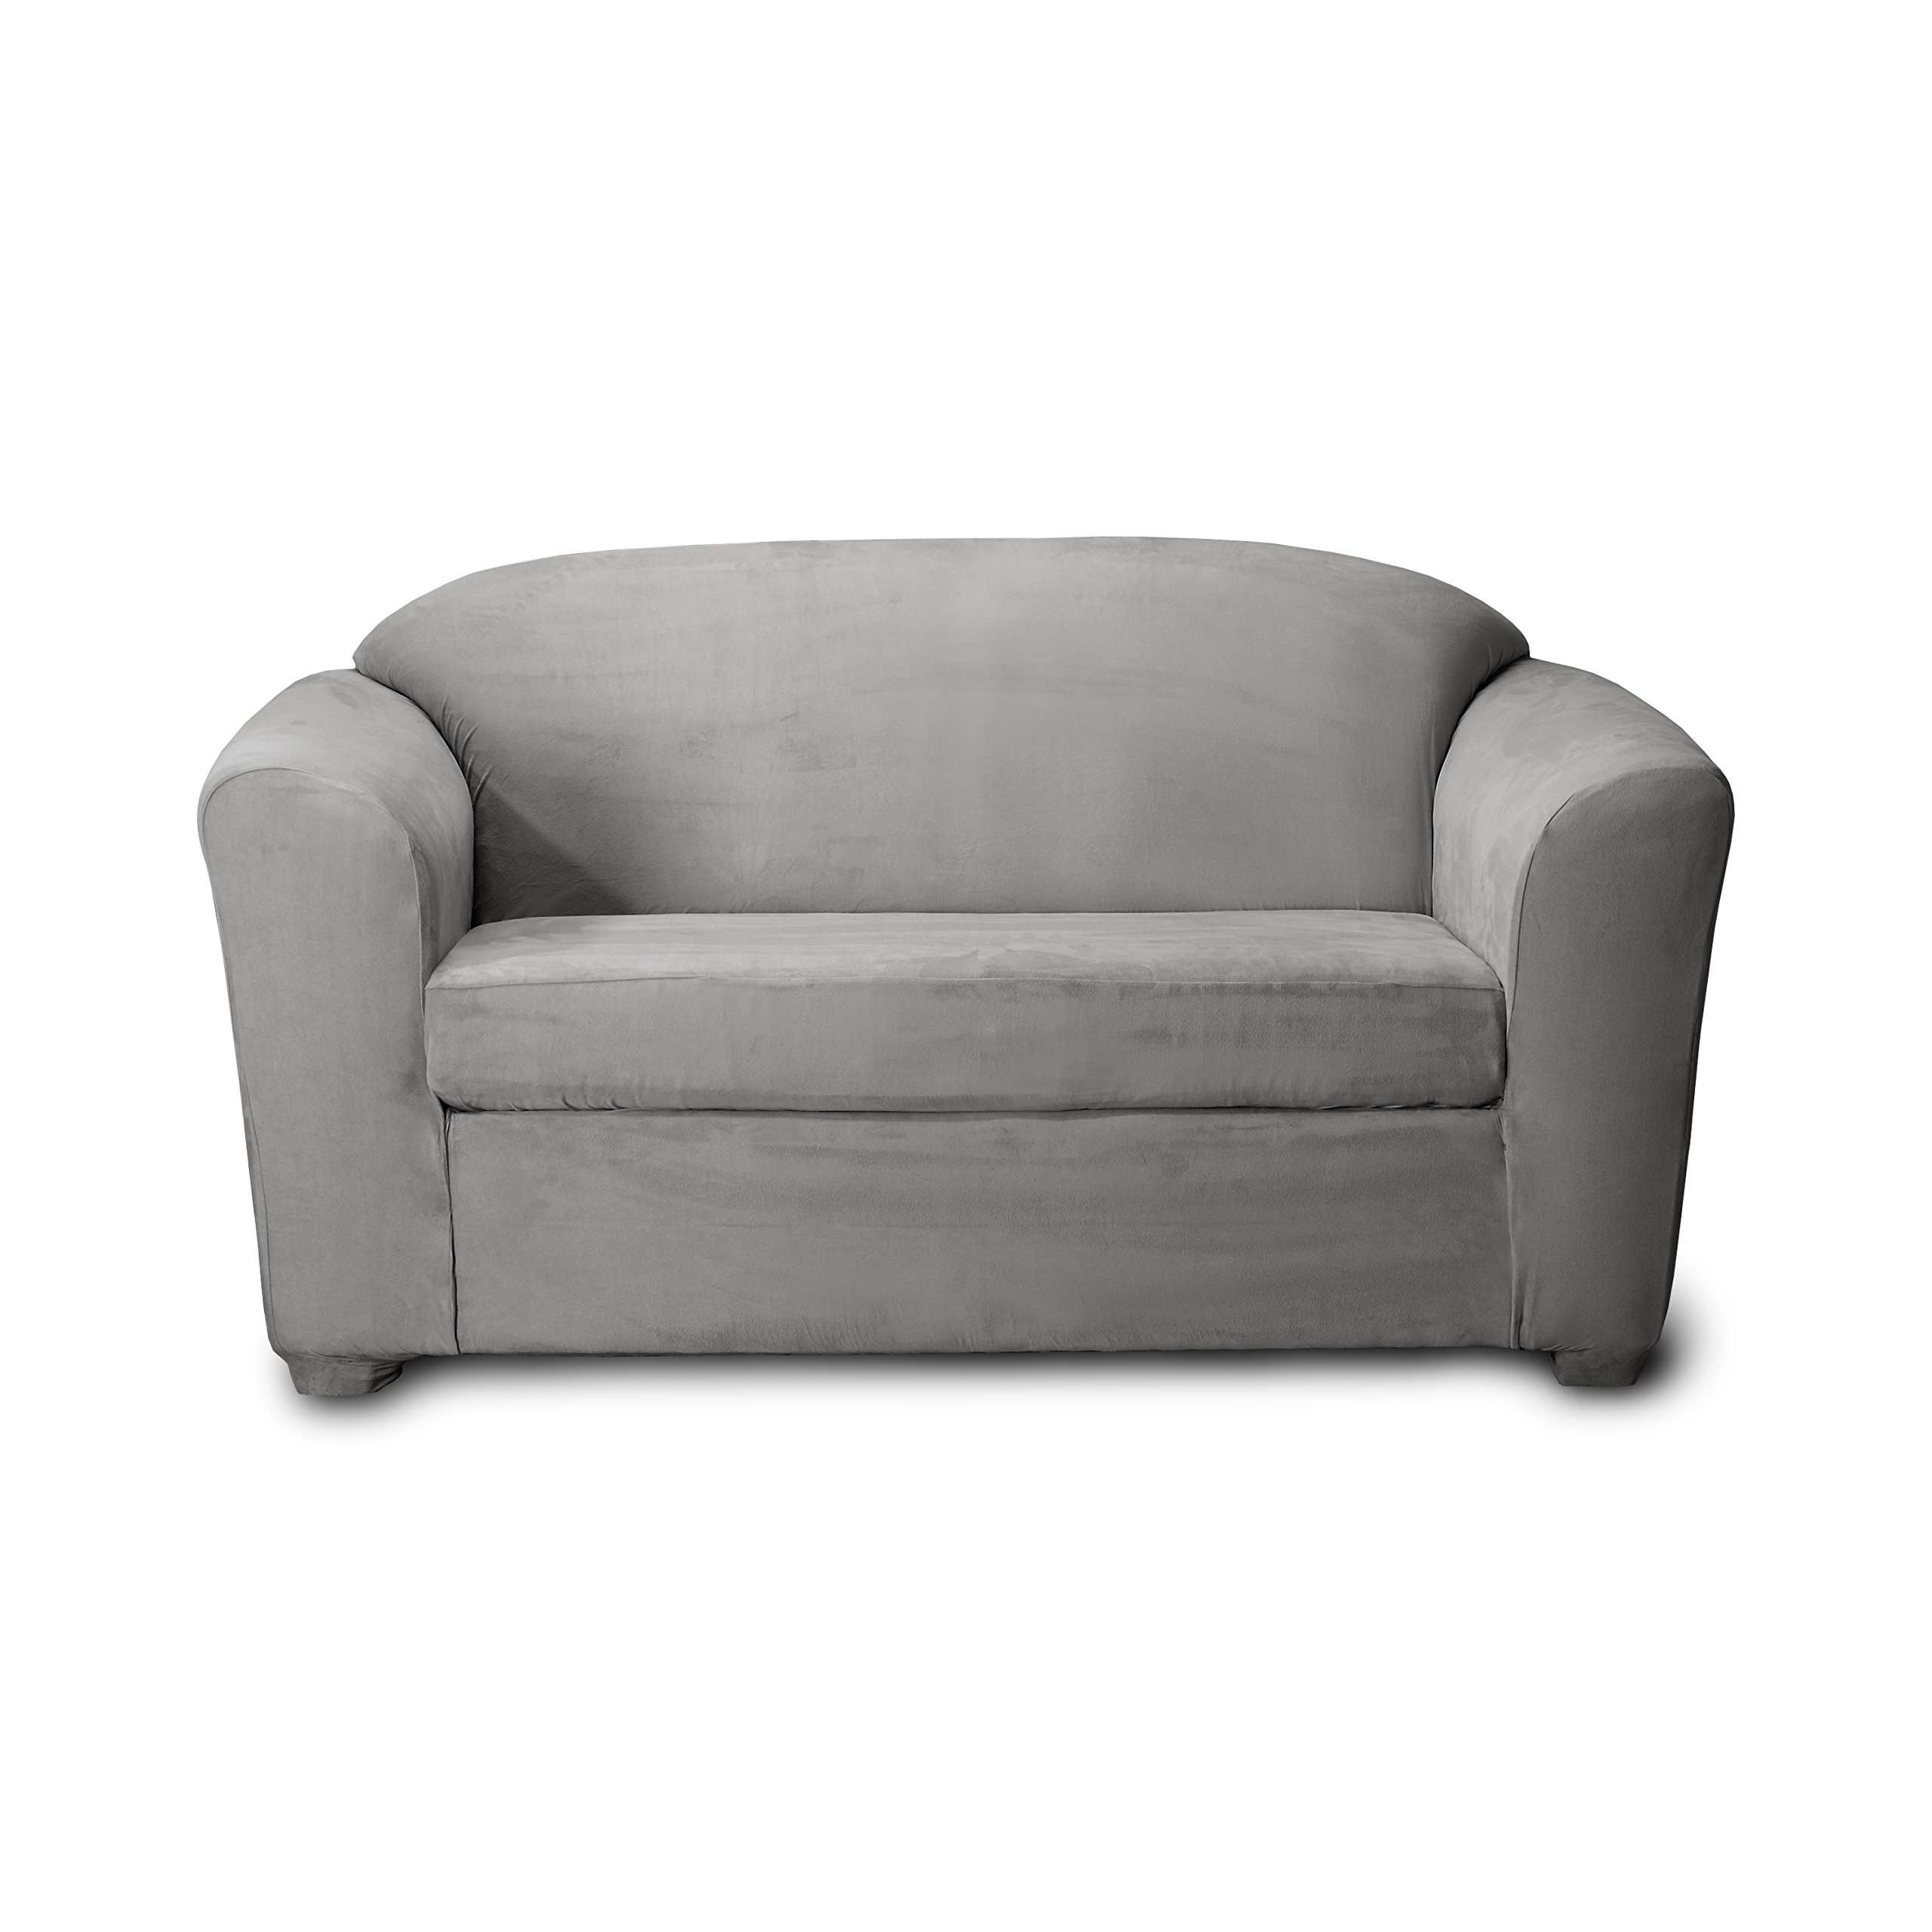 CoverWorks MADILOV2GREY1 Harper Stretch Loveseat Slipcover, Grey